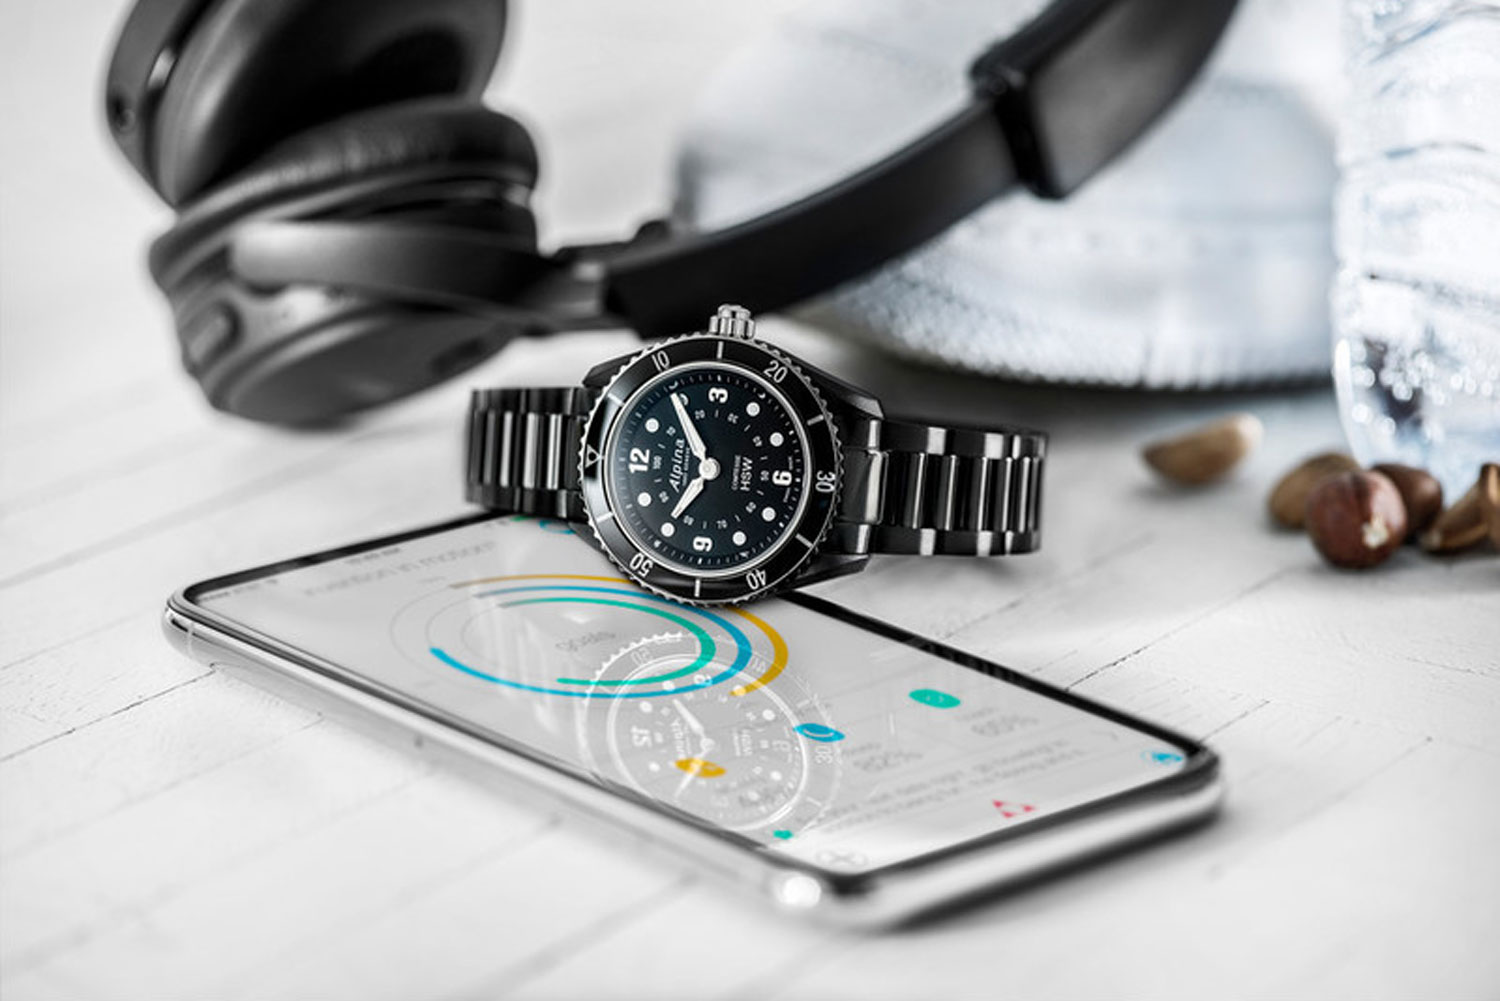 The_Ink_Collective_Creative_Content_Design_Agency_Paris_Sydney_Luxury_Editorial_Frederique_Constant–CEO_Peter_Stas_Interview_Luxury_Watches_Timepieces_Swiss_Manufacture–3.jpg